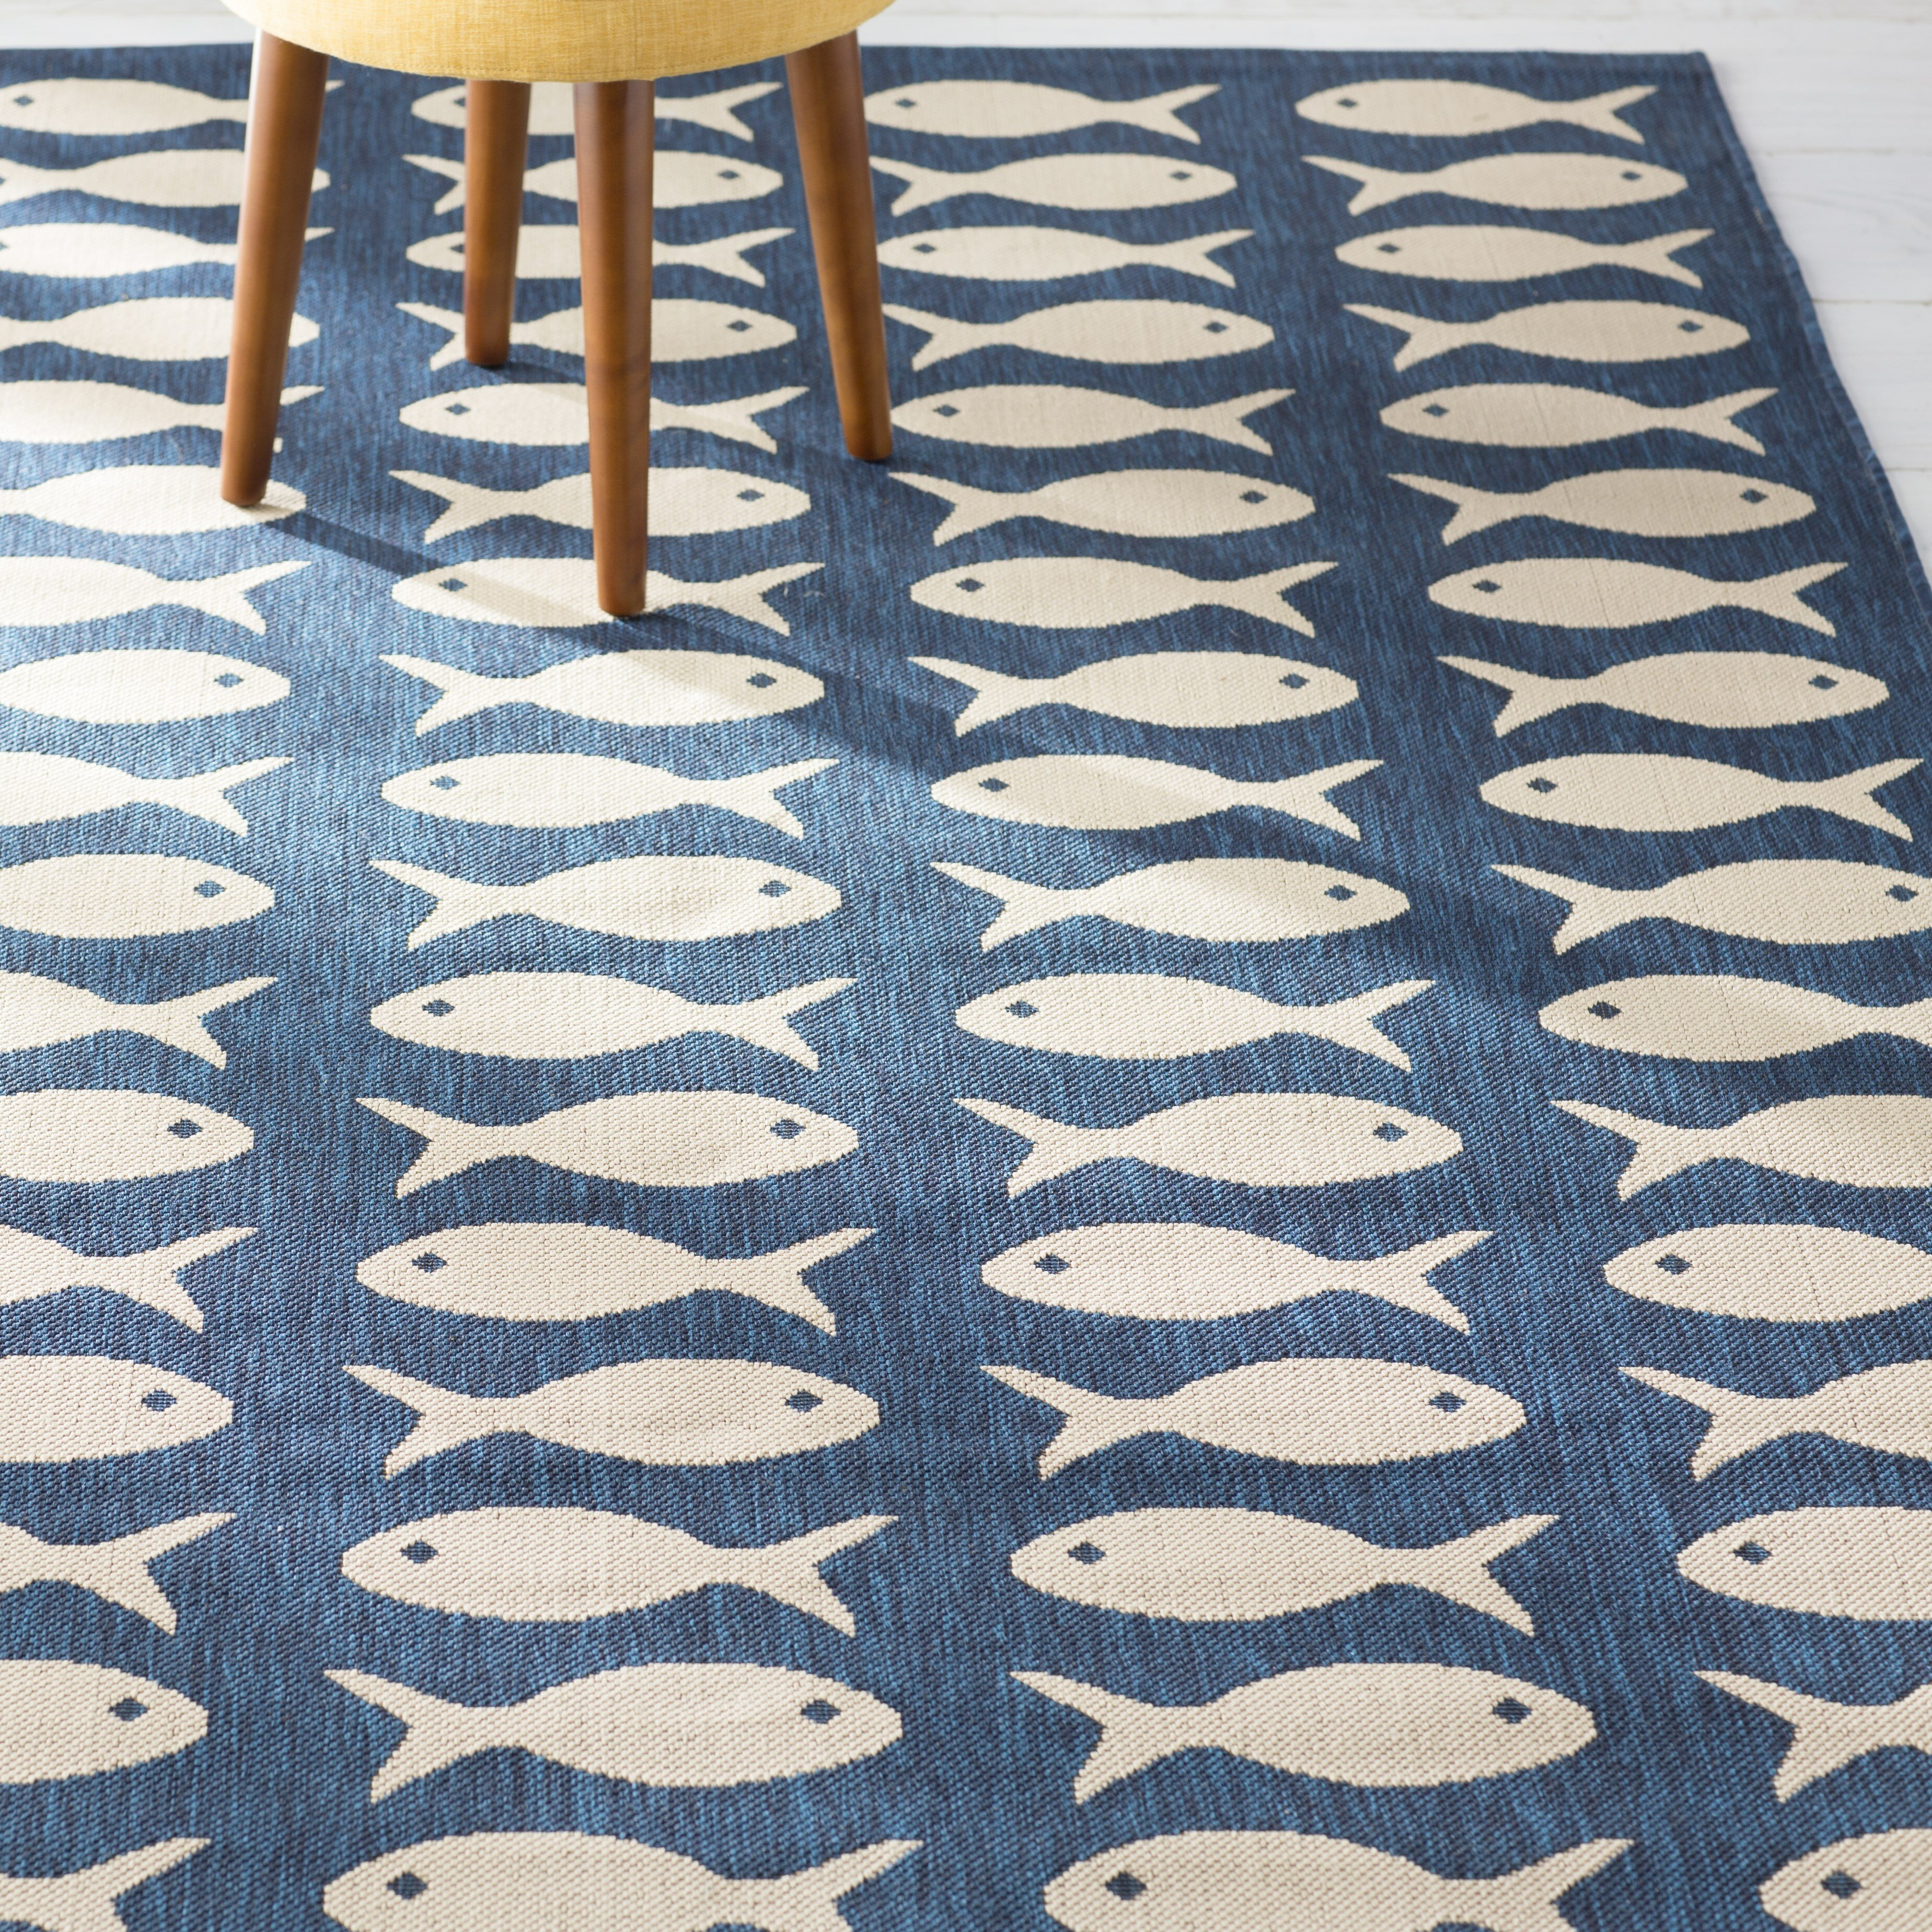 indooroutdoor blue indoor bluebeige outdoor area short rugs joss rug pdp main beige navybeige reviews